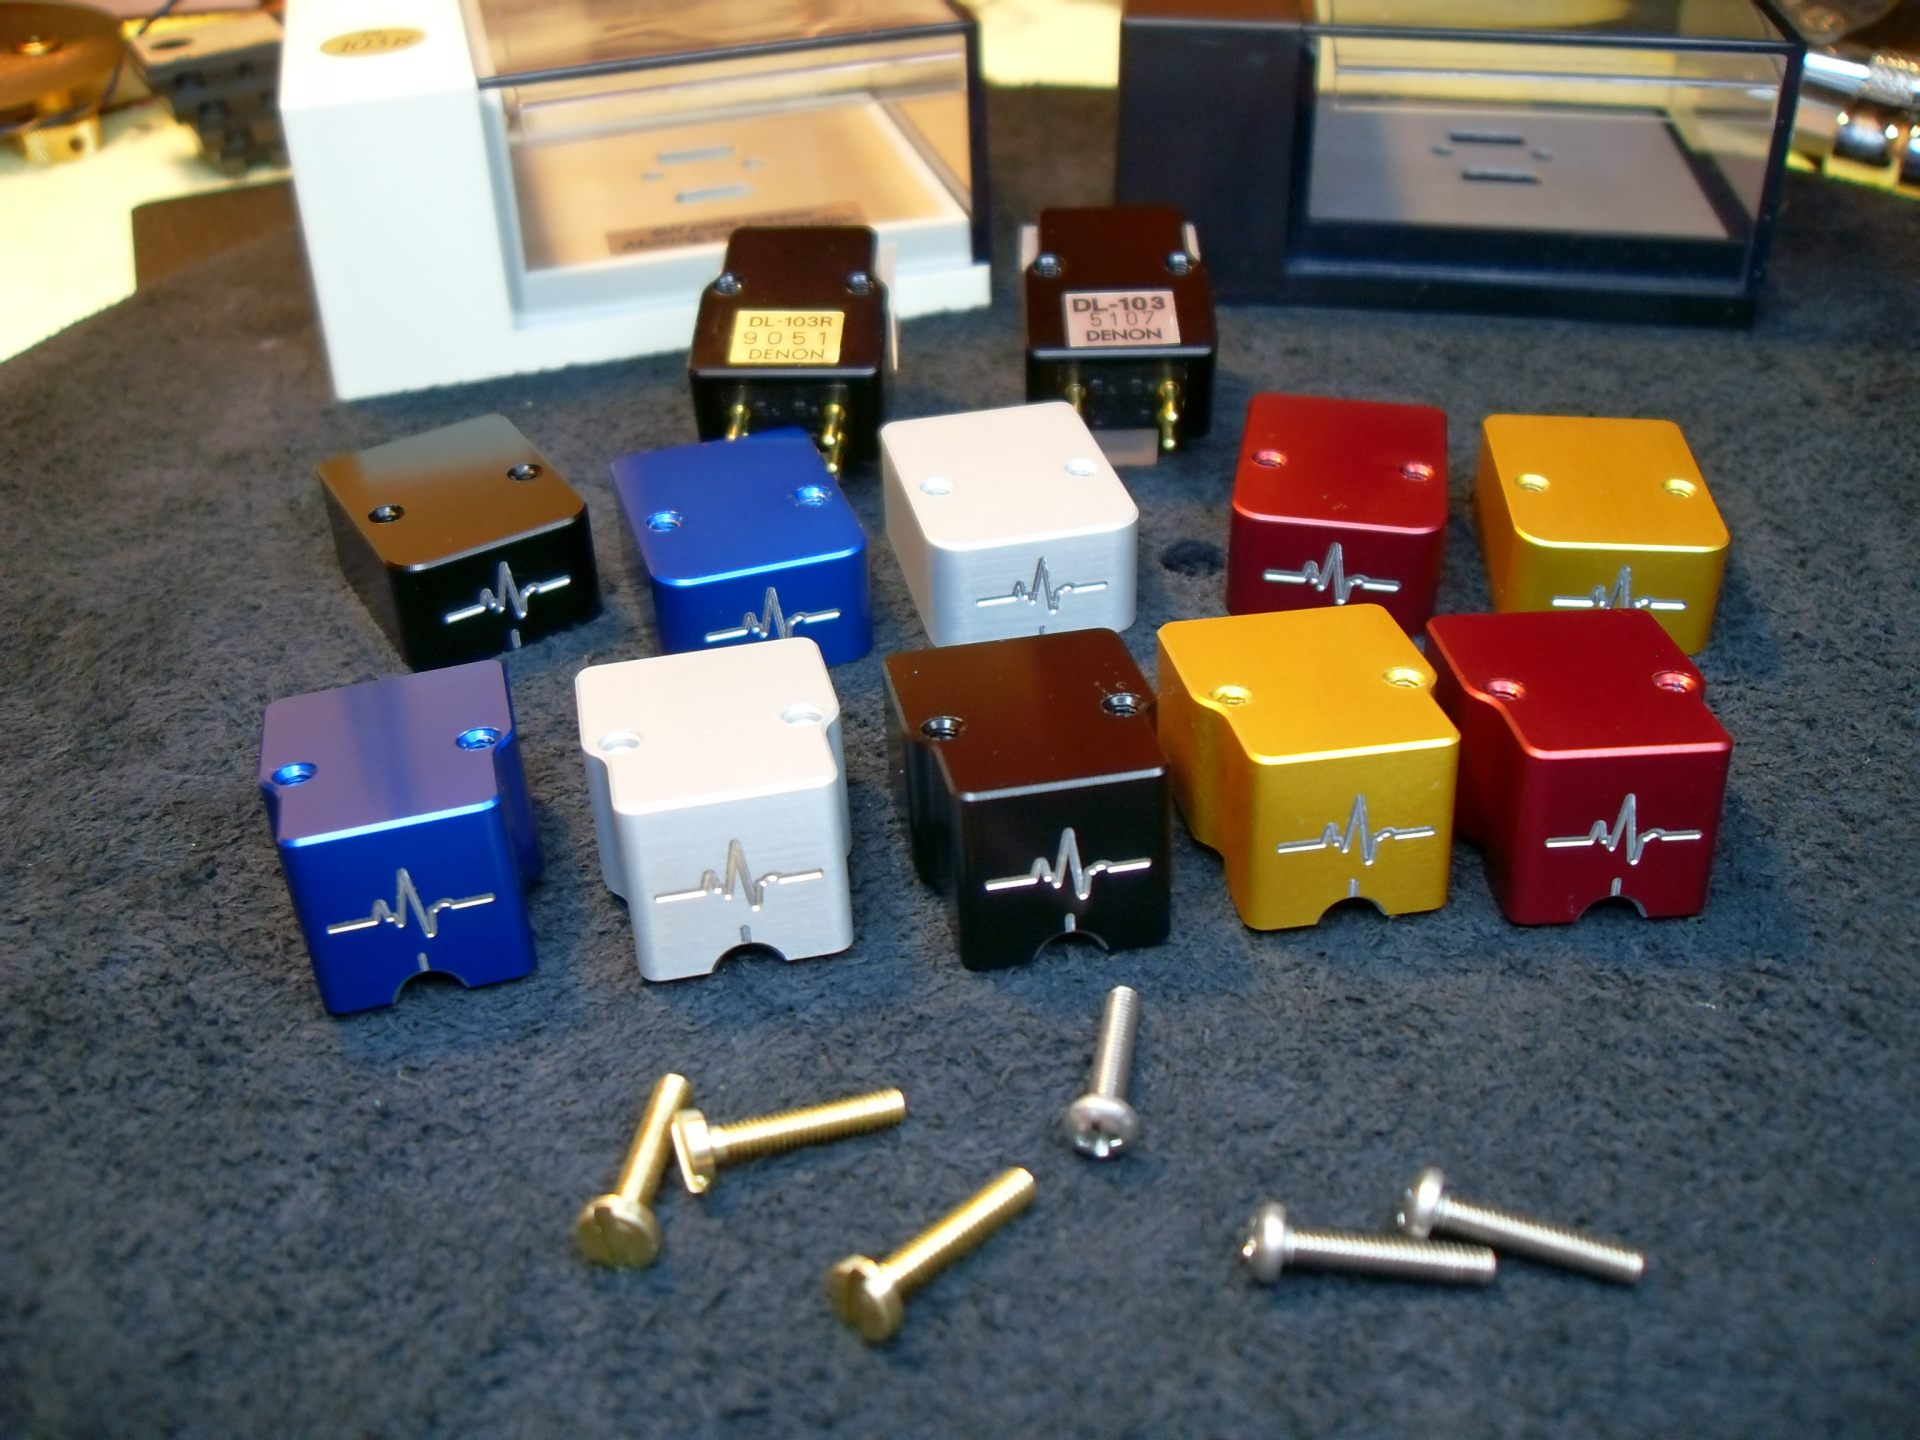 Pulse Guard phono cartridges